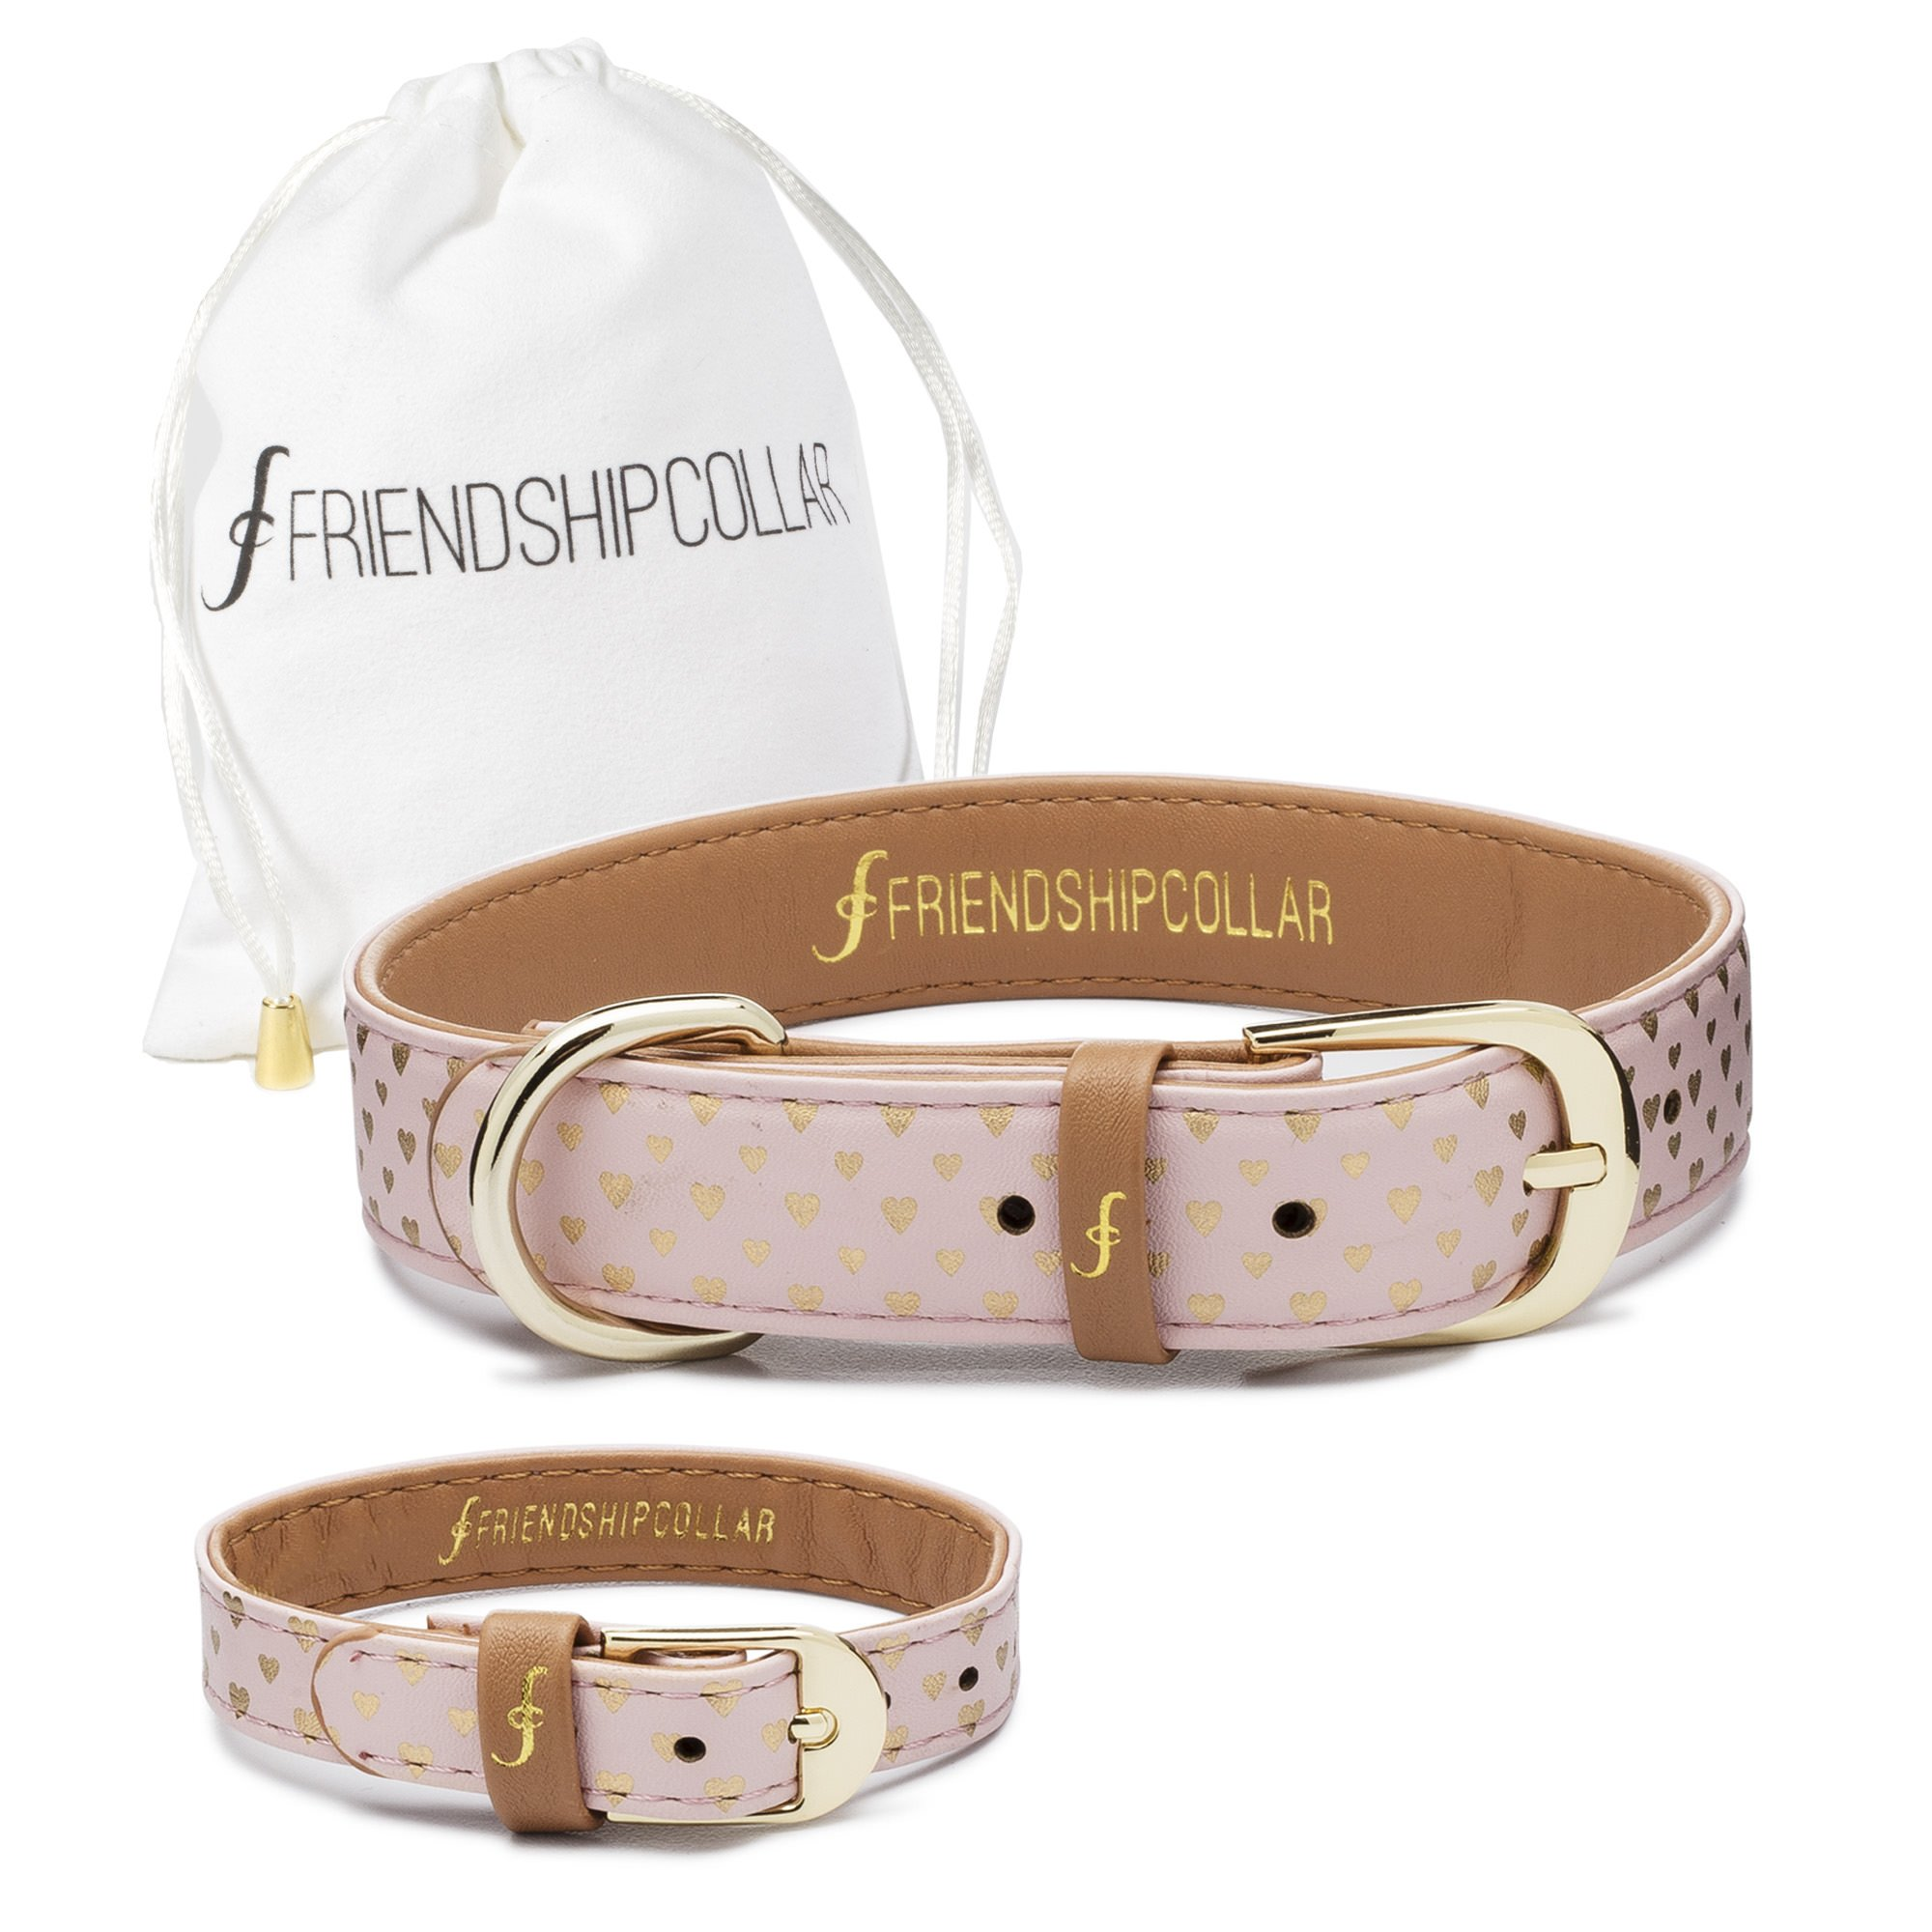 FriendshipCollar Dog Collar and Friendship Bracelet - Puppy Love - X Small